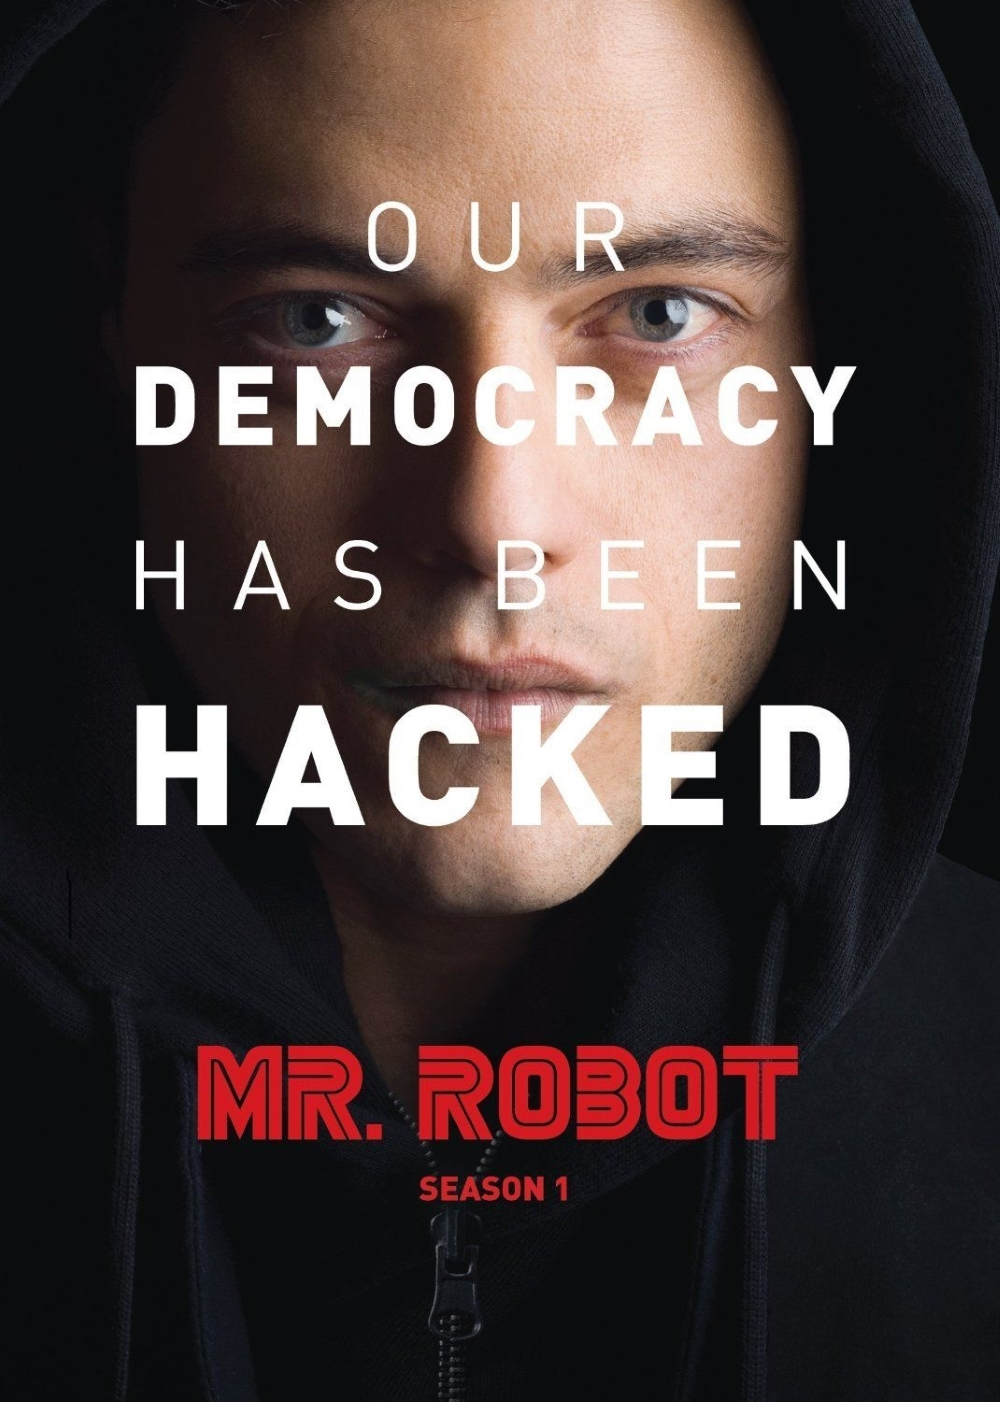 Mr robot season 1 dvd